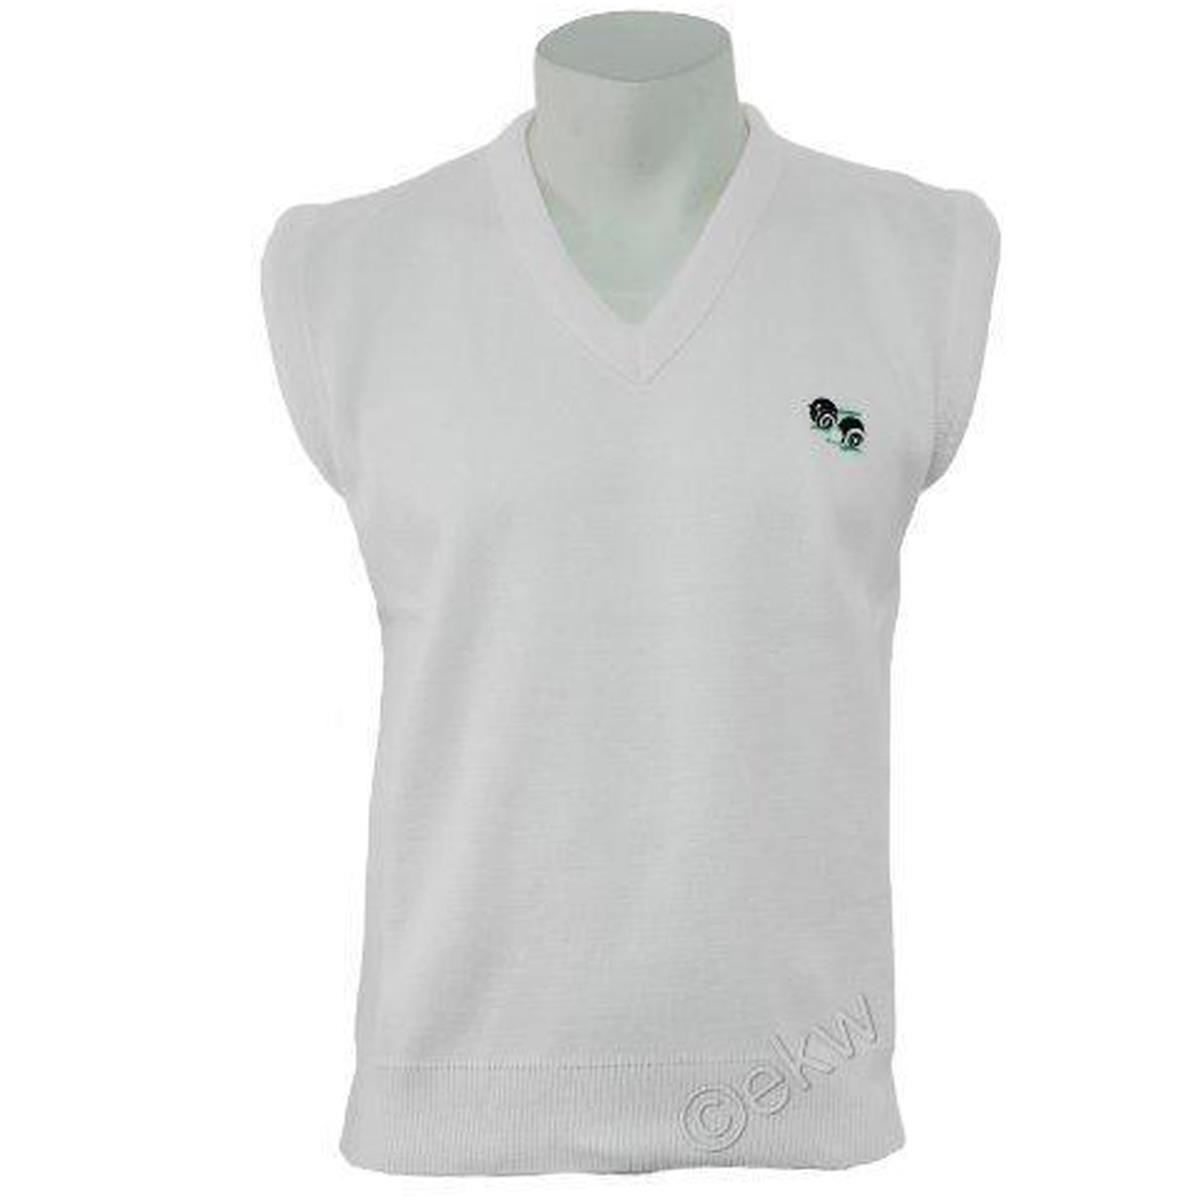 MEN'S KNITTED WHITE LAWN BOWLS BOWLING V-NECK JUMPER SWEATER Tank Top